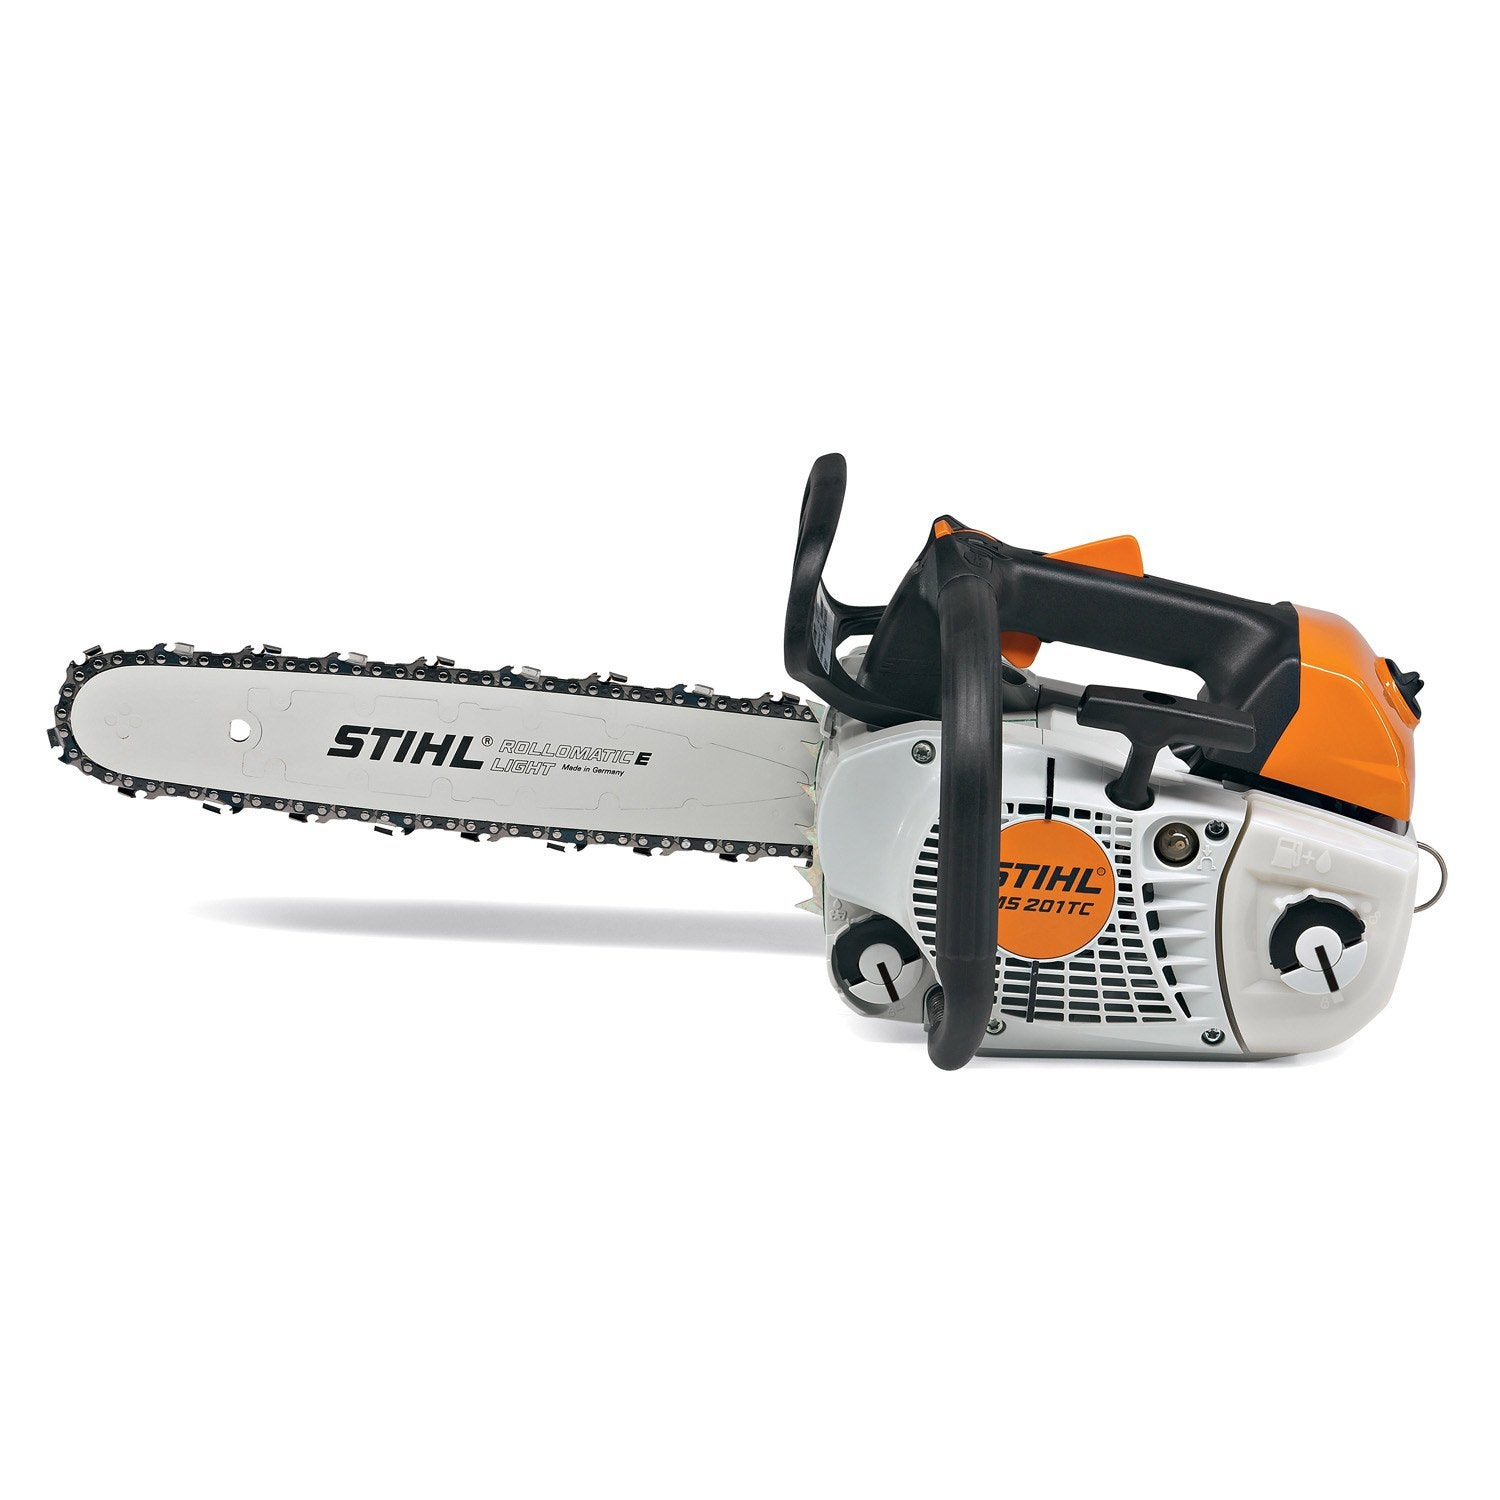 tron onneuse lagueuse essence stihl ms 201 tc m 35 2 cm 1800w coupe de 35cm leroy merlin. Black Bedroom Furniture Sets. Home Design Ideas